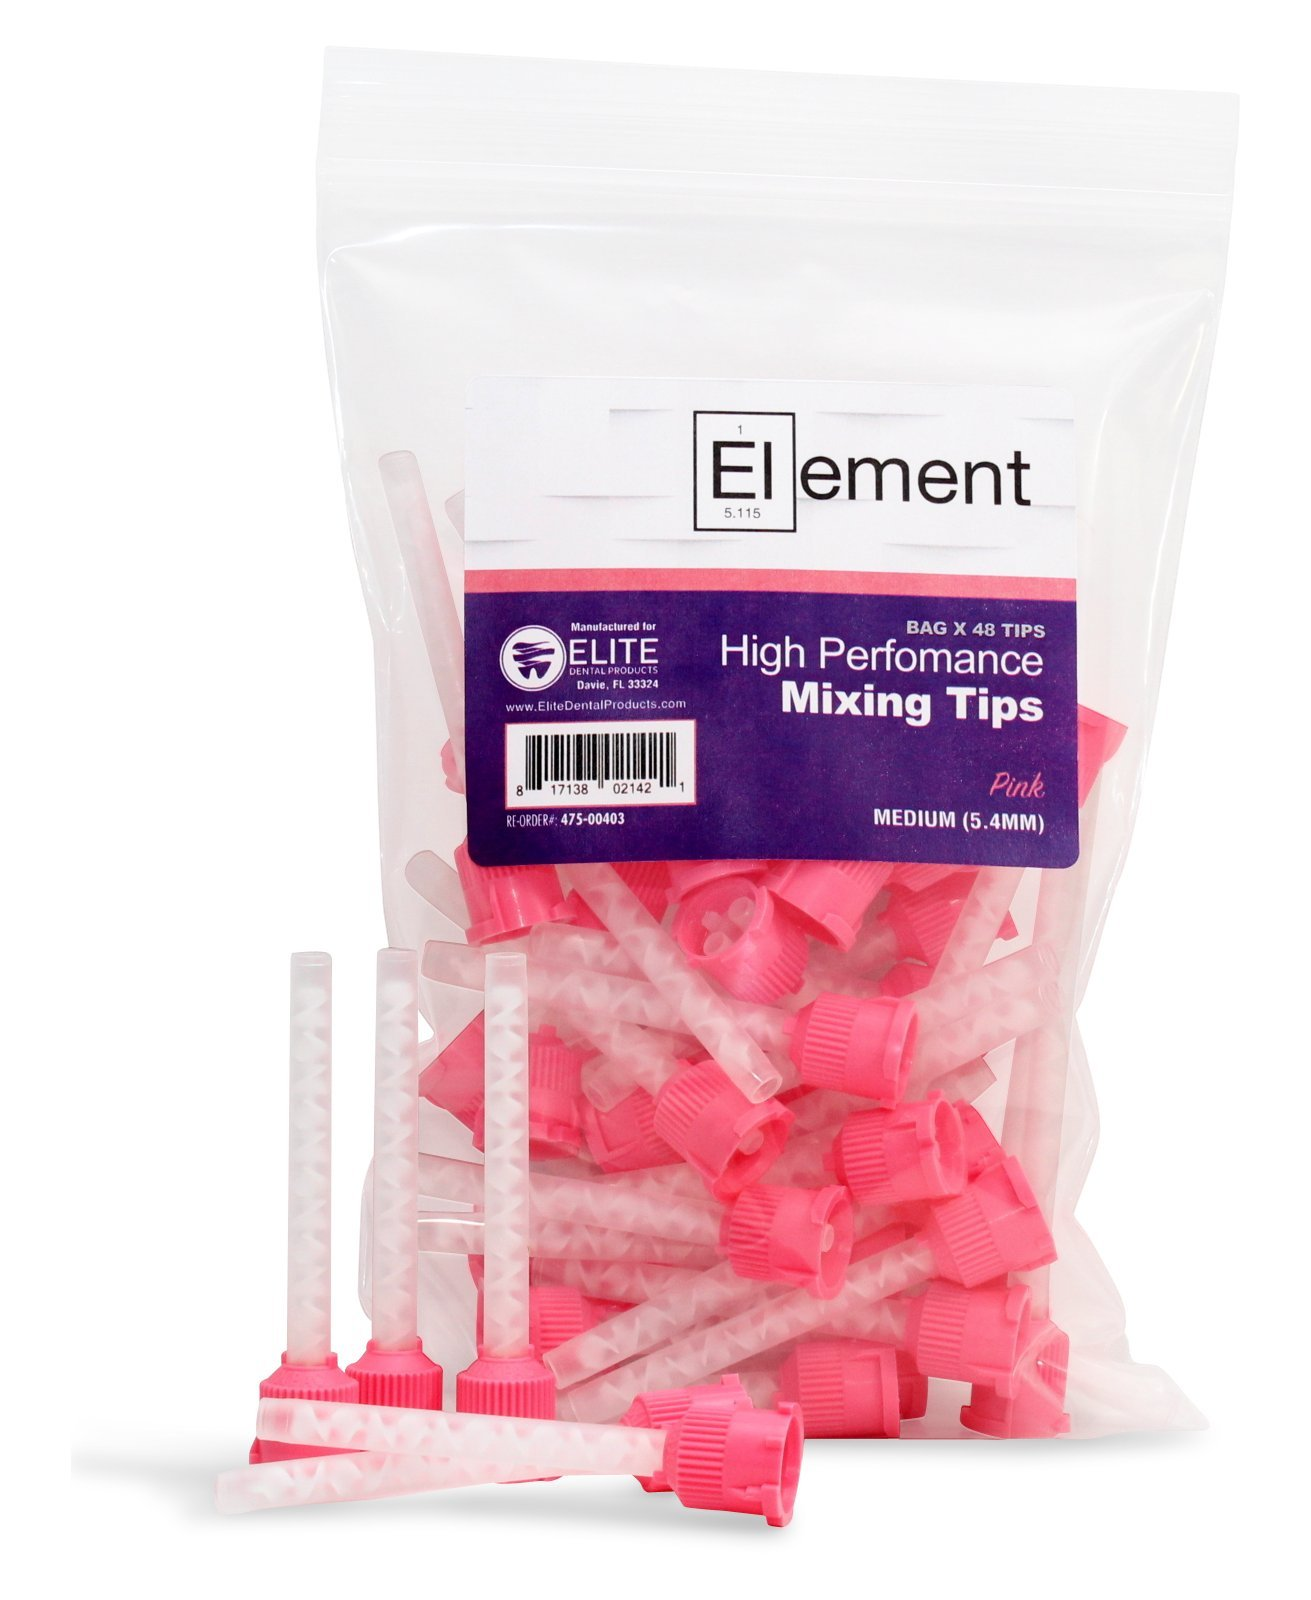 ELEMENT HP PINK VPS Mixing Tips 5.4 mm Impression 48/PK Genuine Mixpac